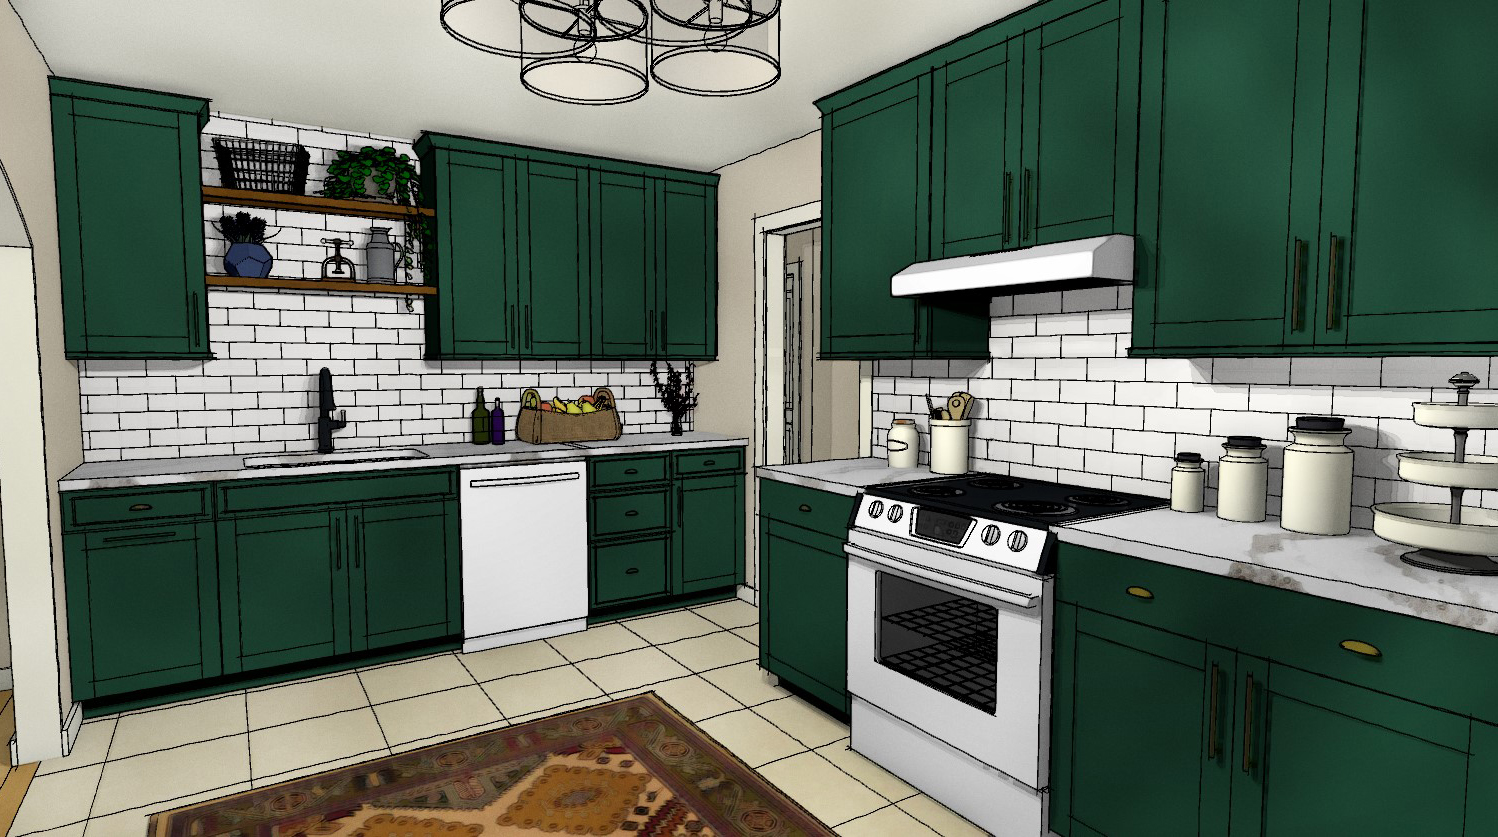 Chief architect kitchen watercolor.jpg